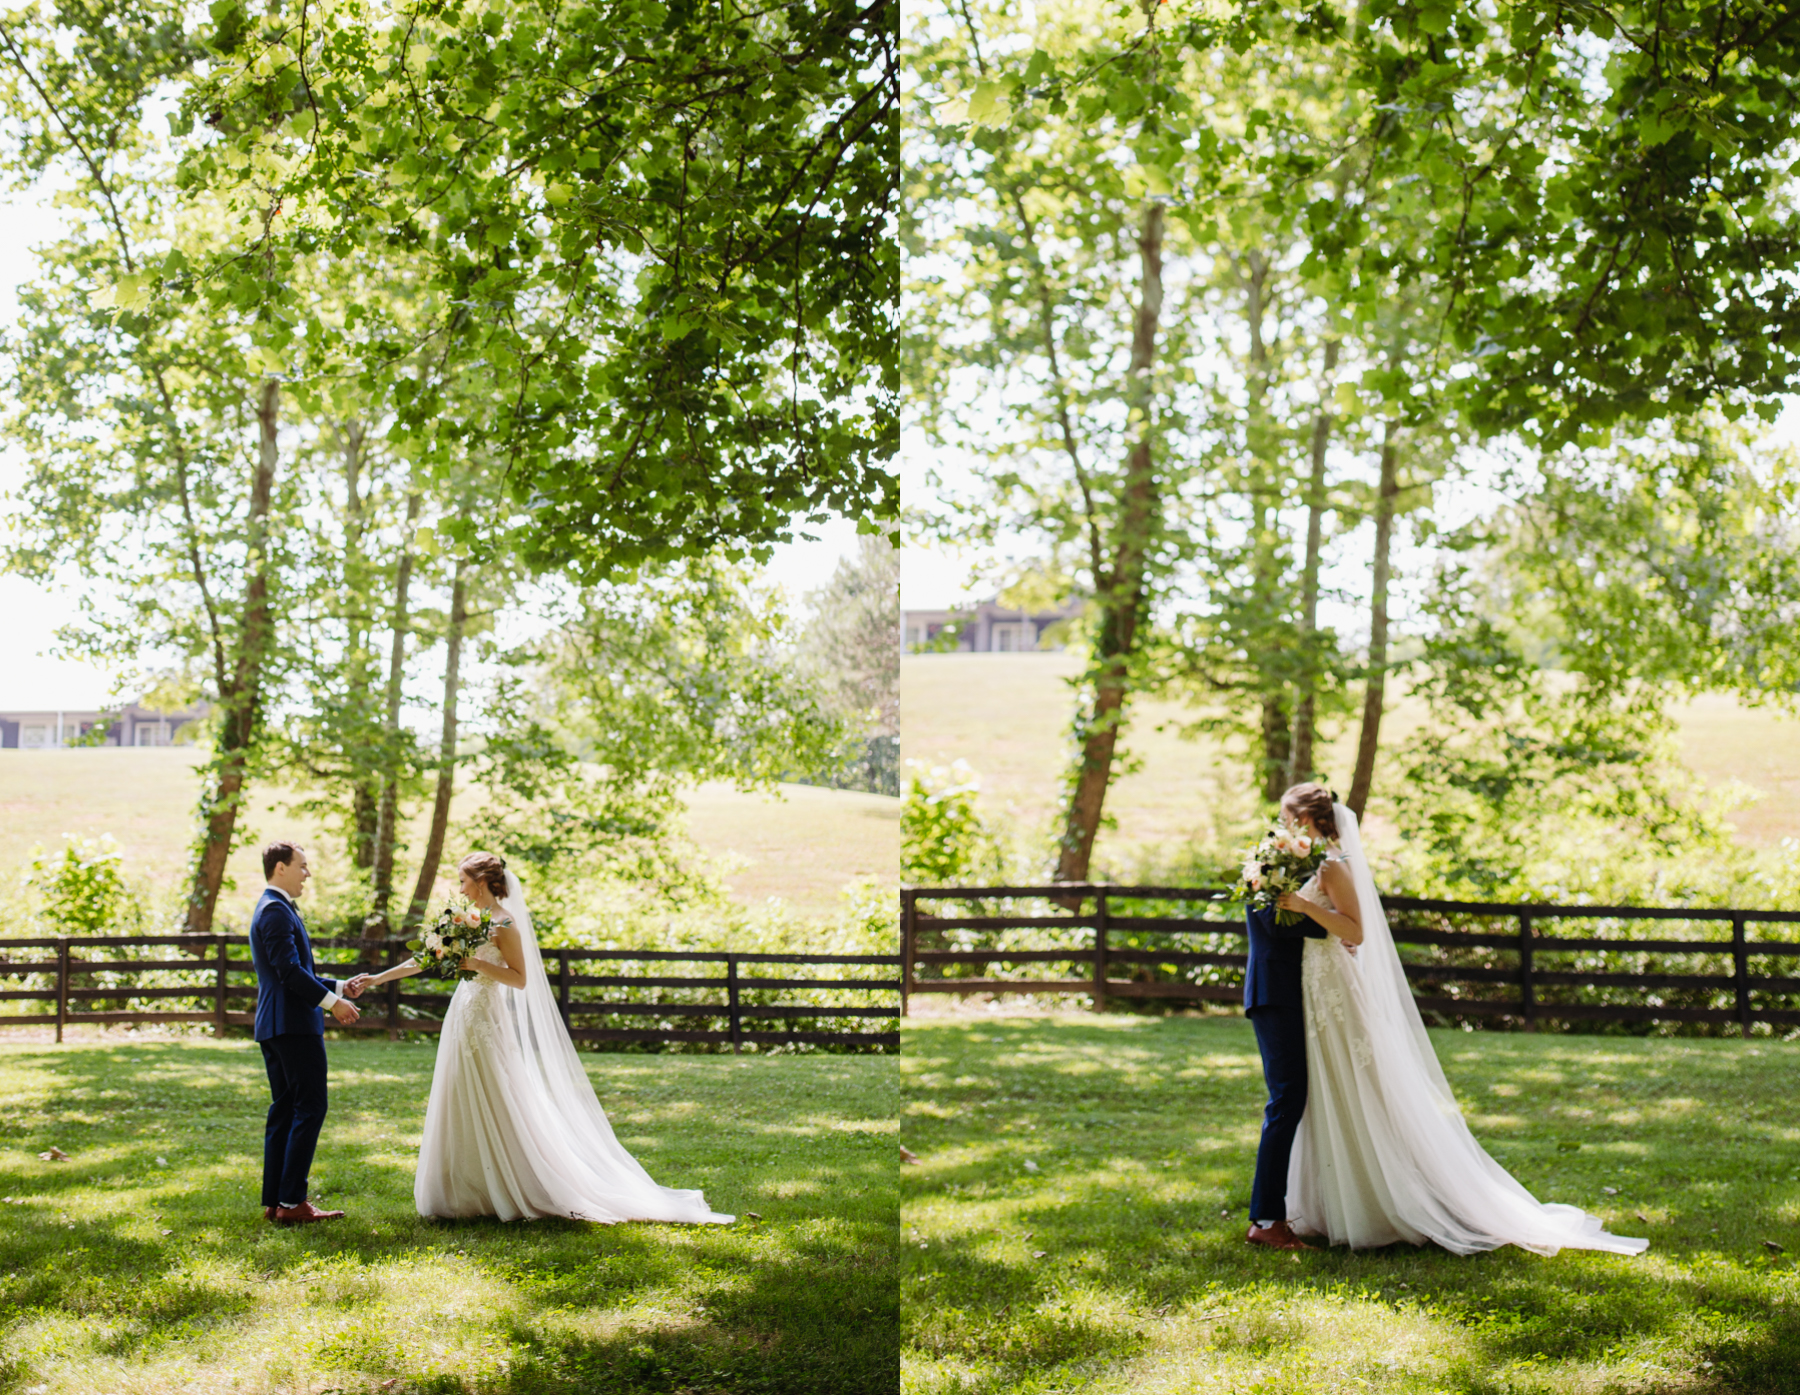 First look portraits at a stables at strawberry creek wedding in Knoxville, tennessee